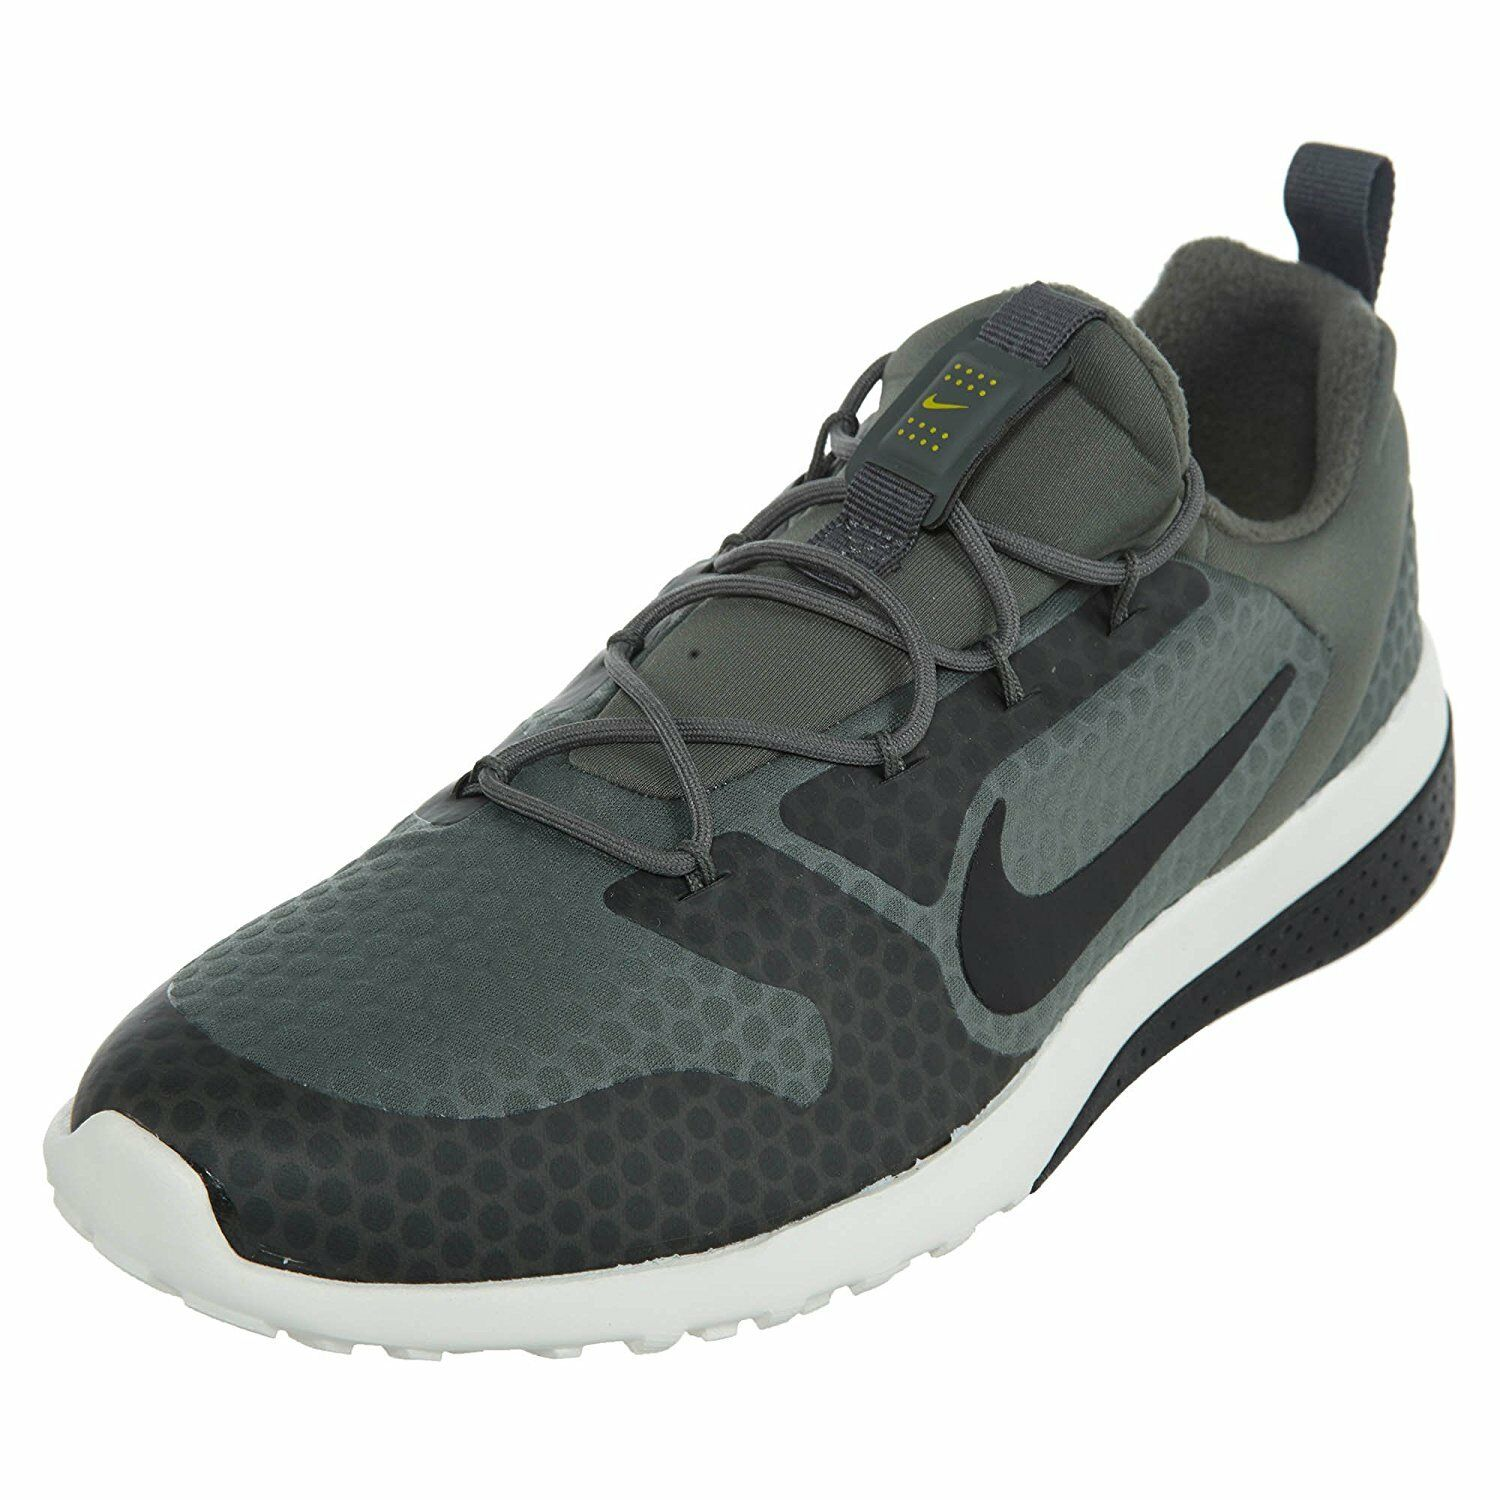 Nike CK Racer Men's Running Shoe 916780 006 SIZE 10 NEW In Box